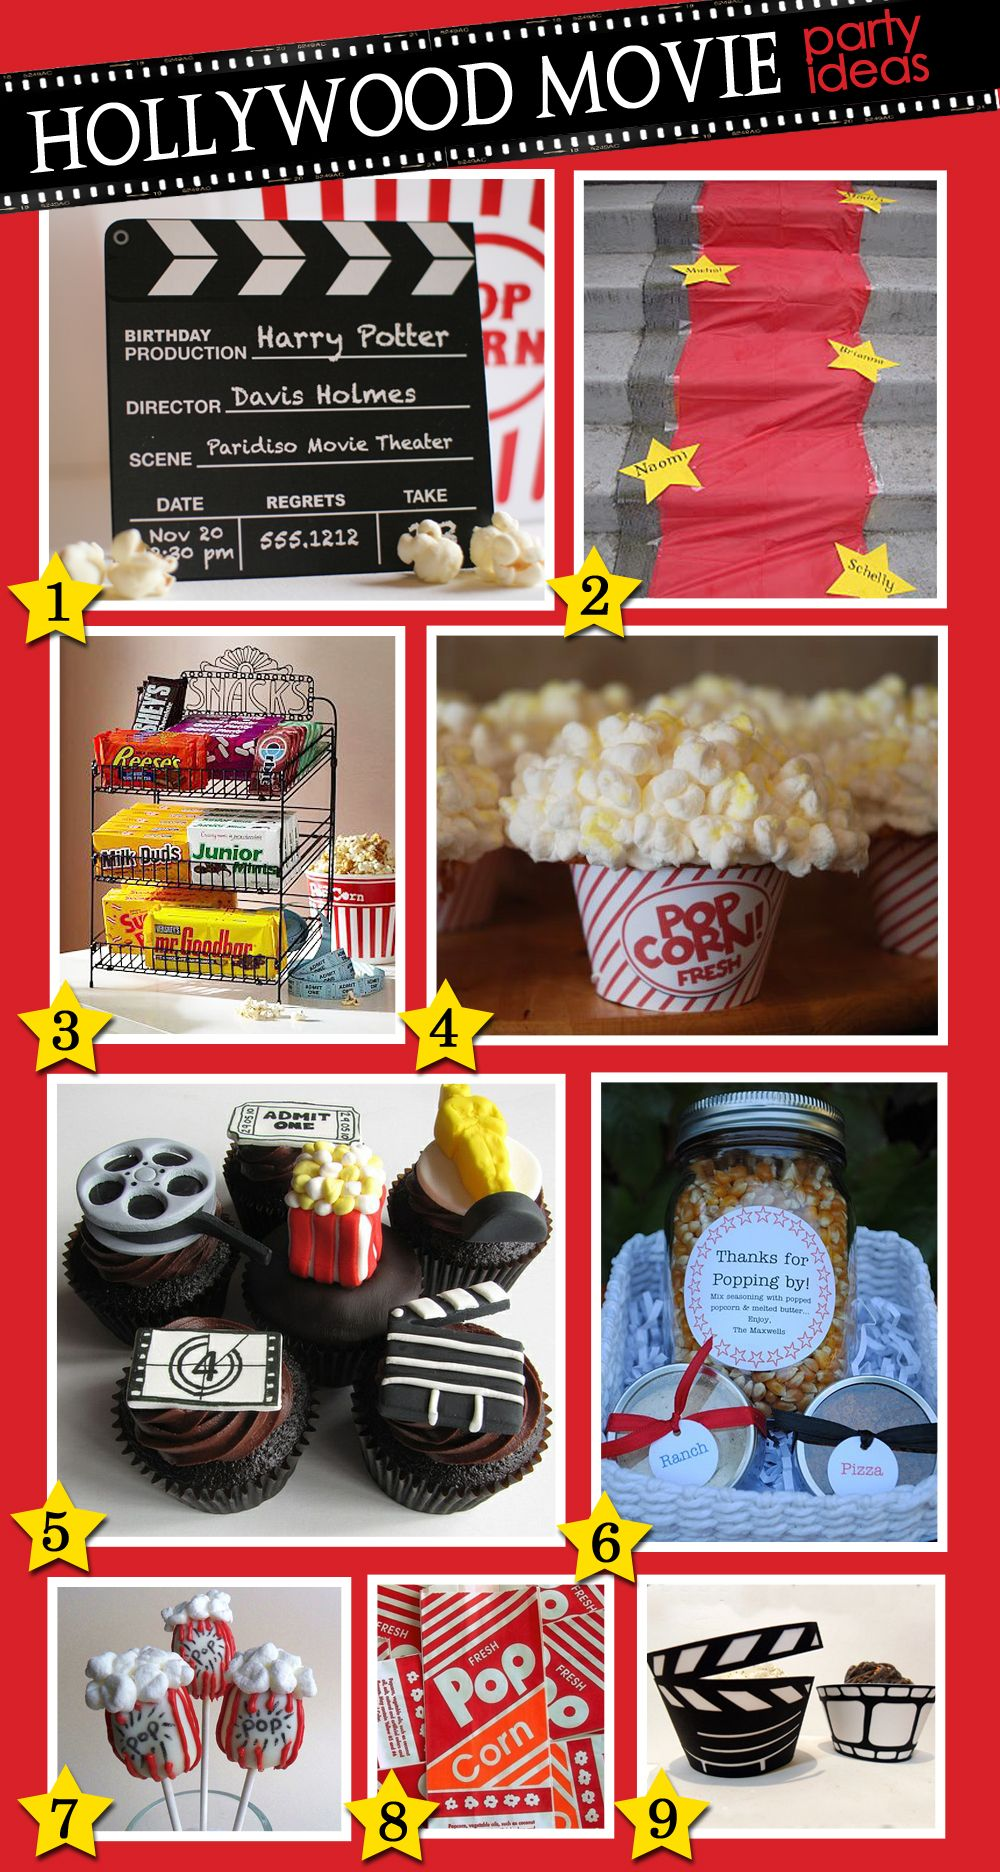 Accent Your Hollywood Movie Party With A Red Carpet Stars Guests Names And Popcorn Cake Pops Swankypress